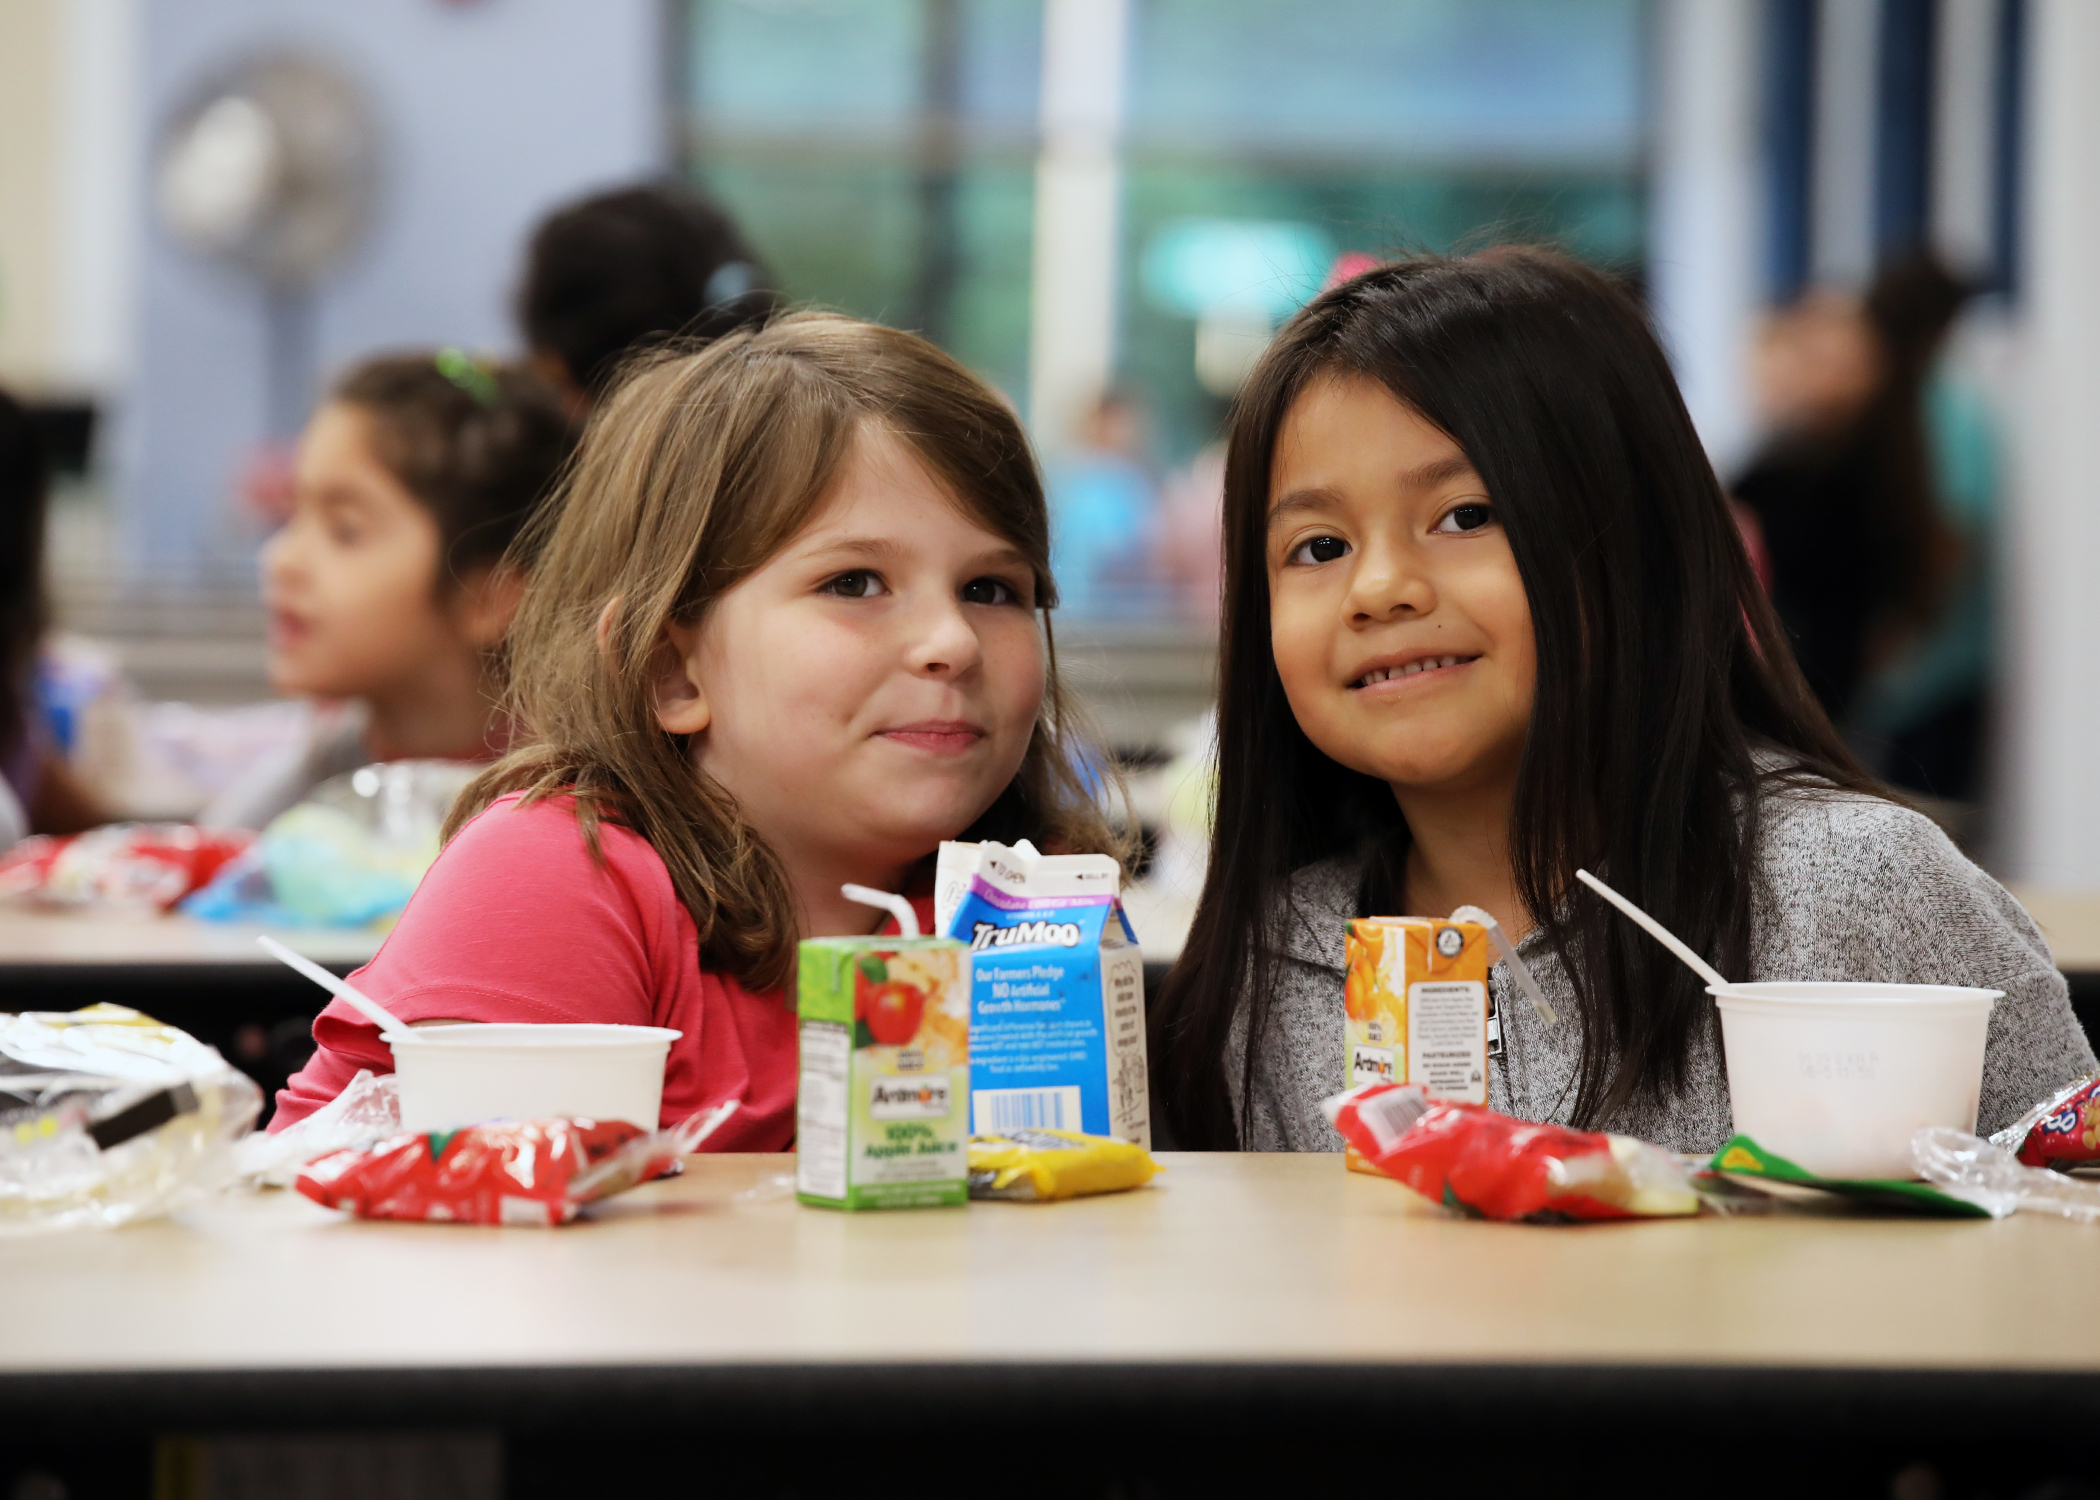 Children posing for a picture in the cafeteria